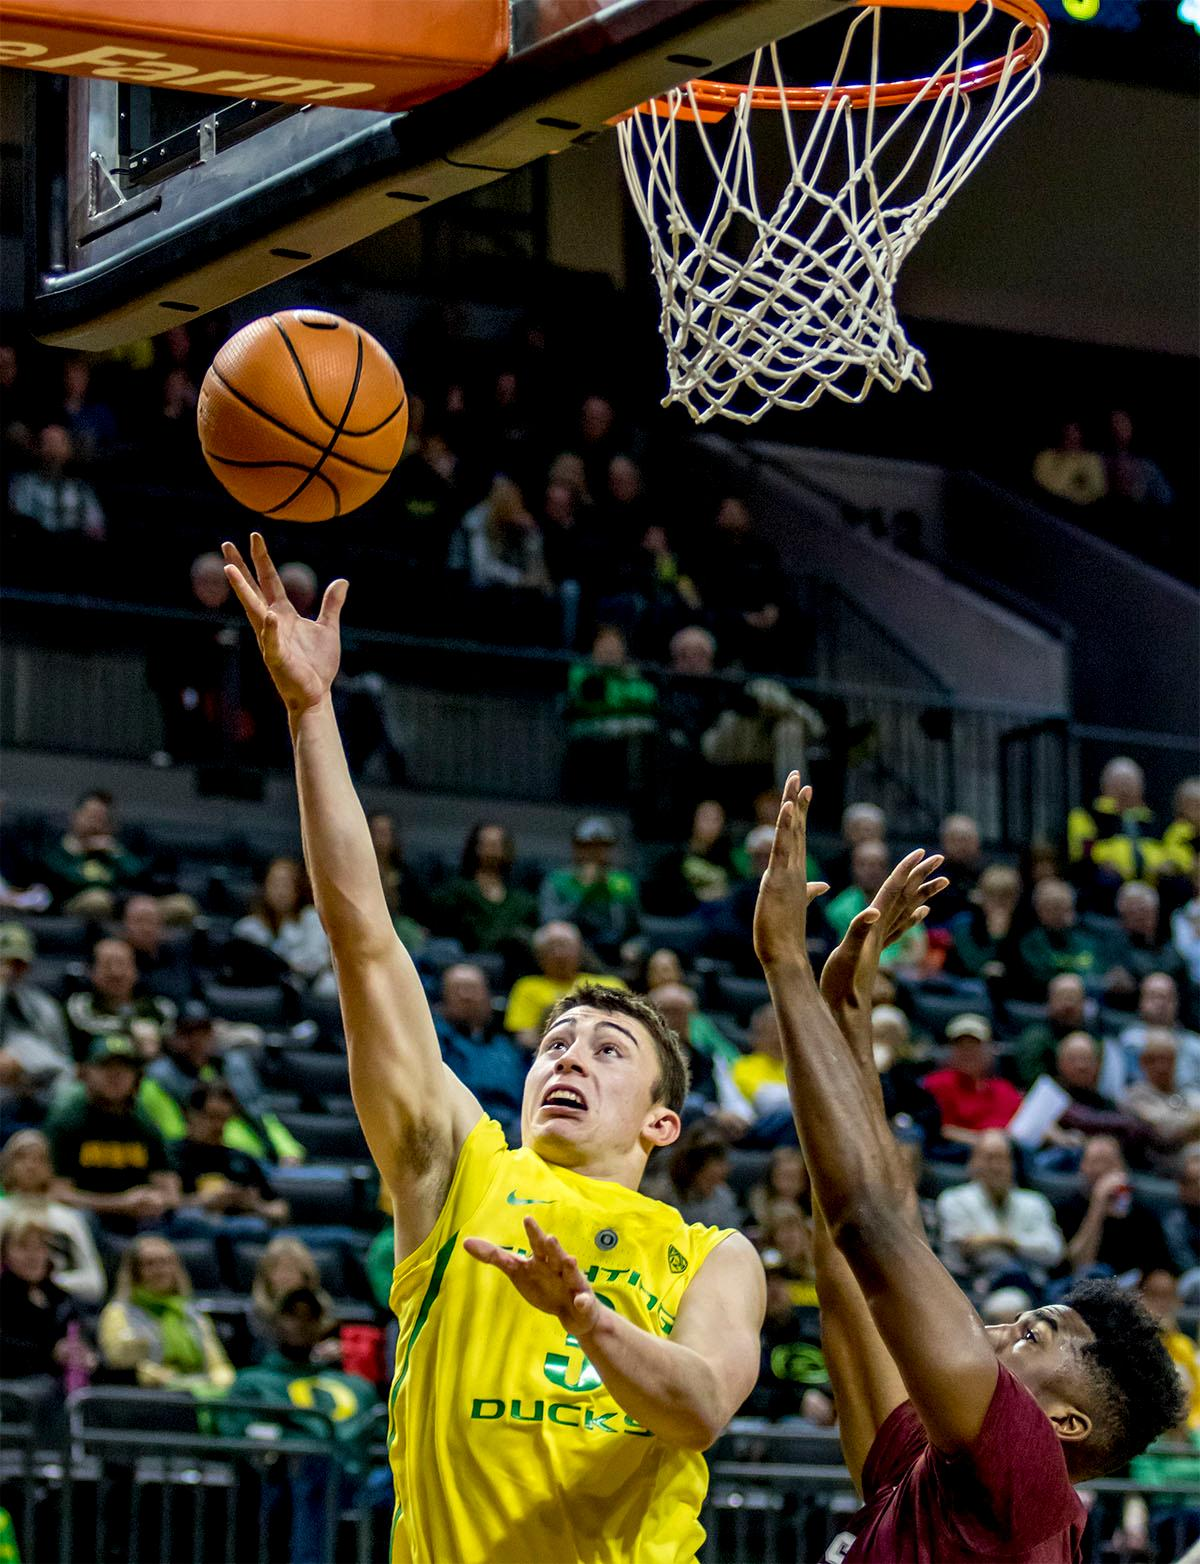 The Duck's Payton Pritchard (#3) tosses the ball up and into the basket. The Oregon Ducks defeated Texas Southern Tigers 74-68. The Ducks are now 7-3 overall in the Pac-12. Photo by August Frank. Oregon News Lab